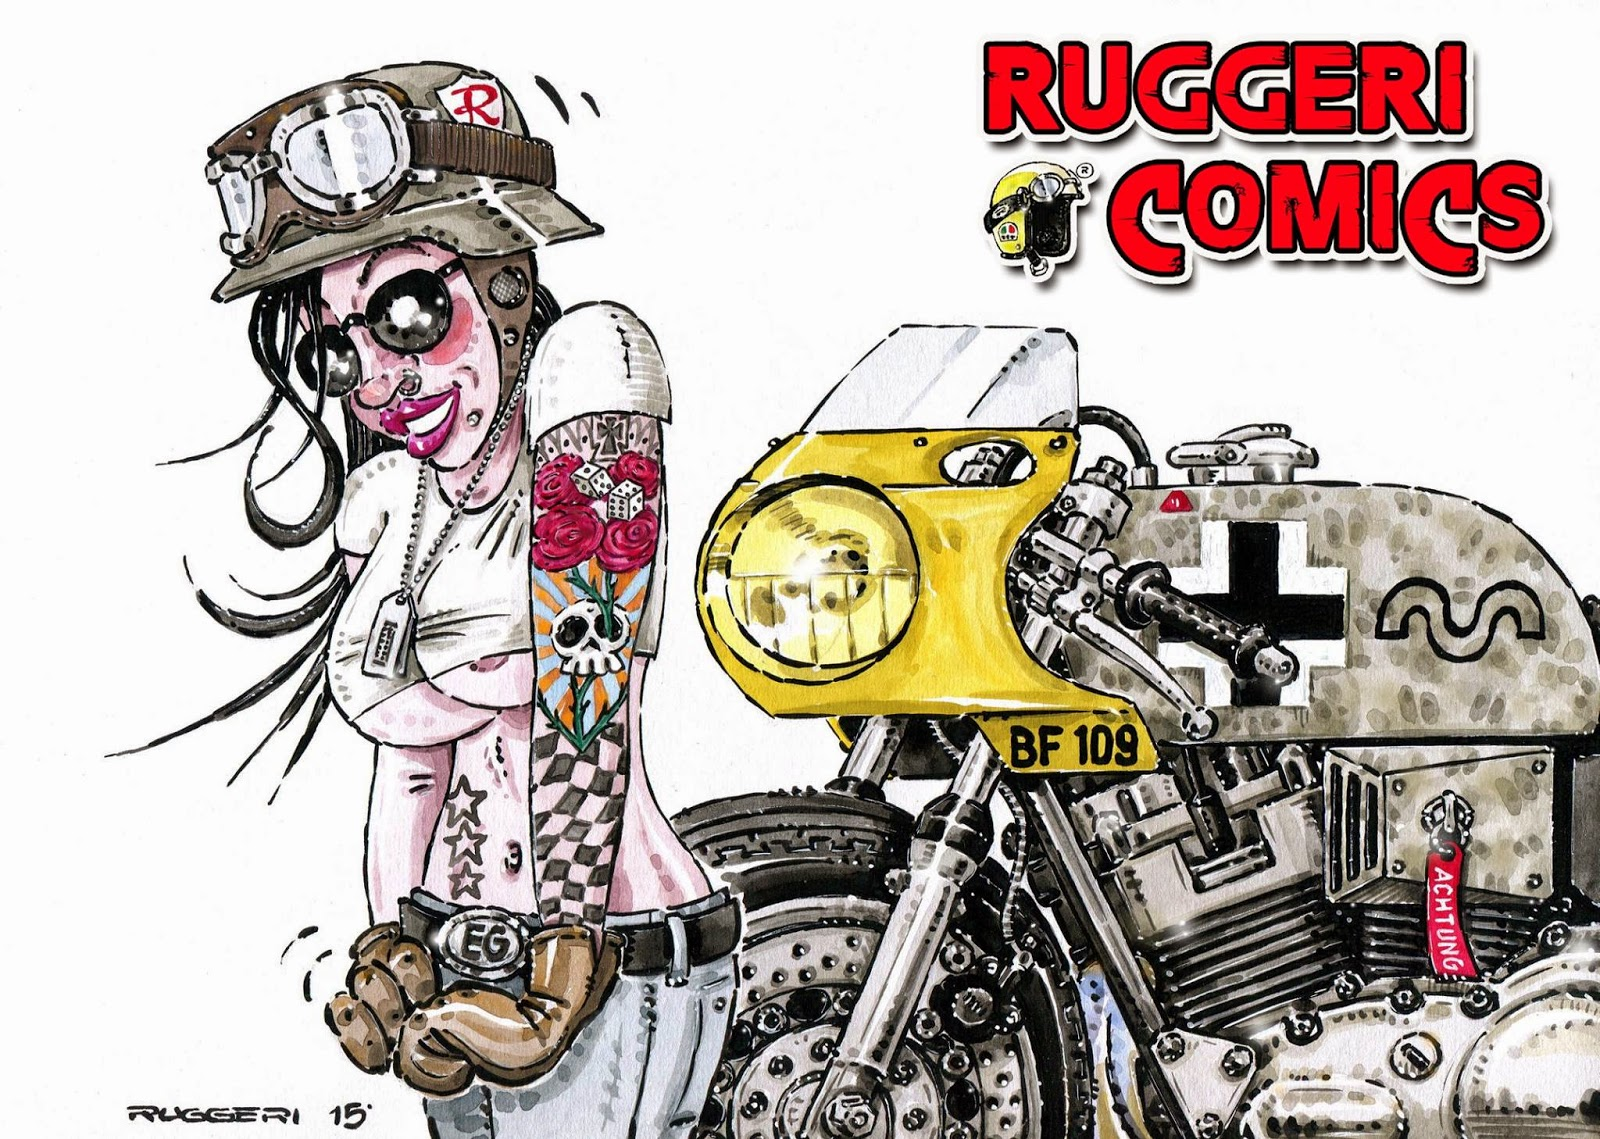 Racing Caf U00e8  Ruggeri U0026 39 S Comics  43